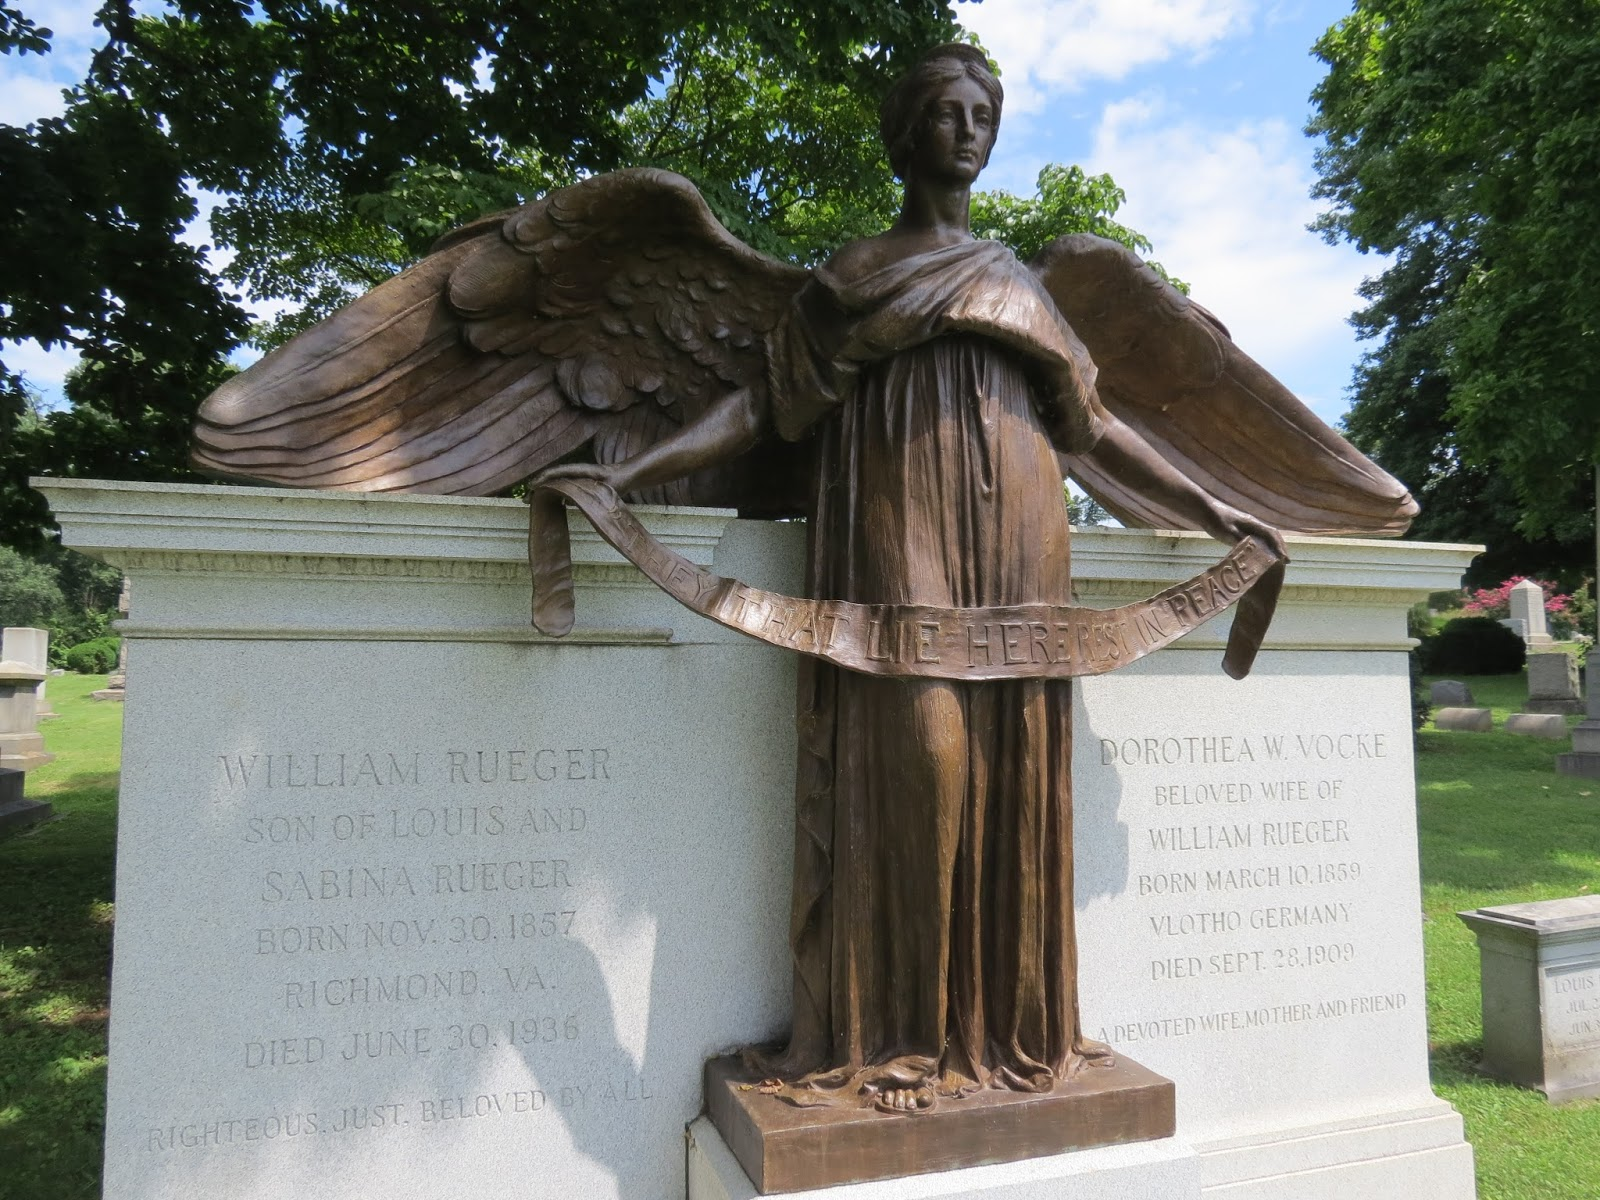 The Bronze Angel Above Is Holding A Banner That Says